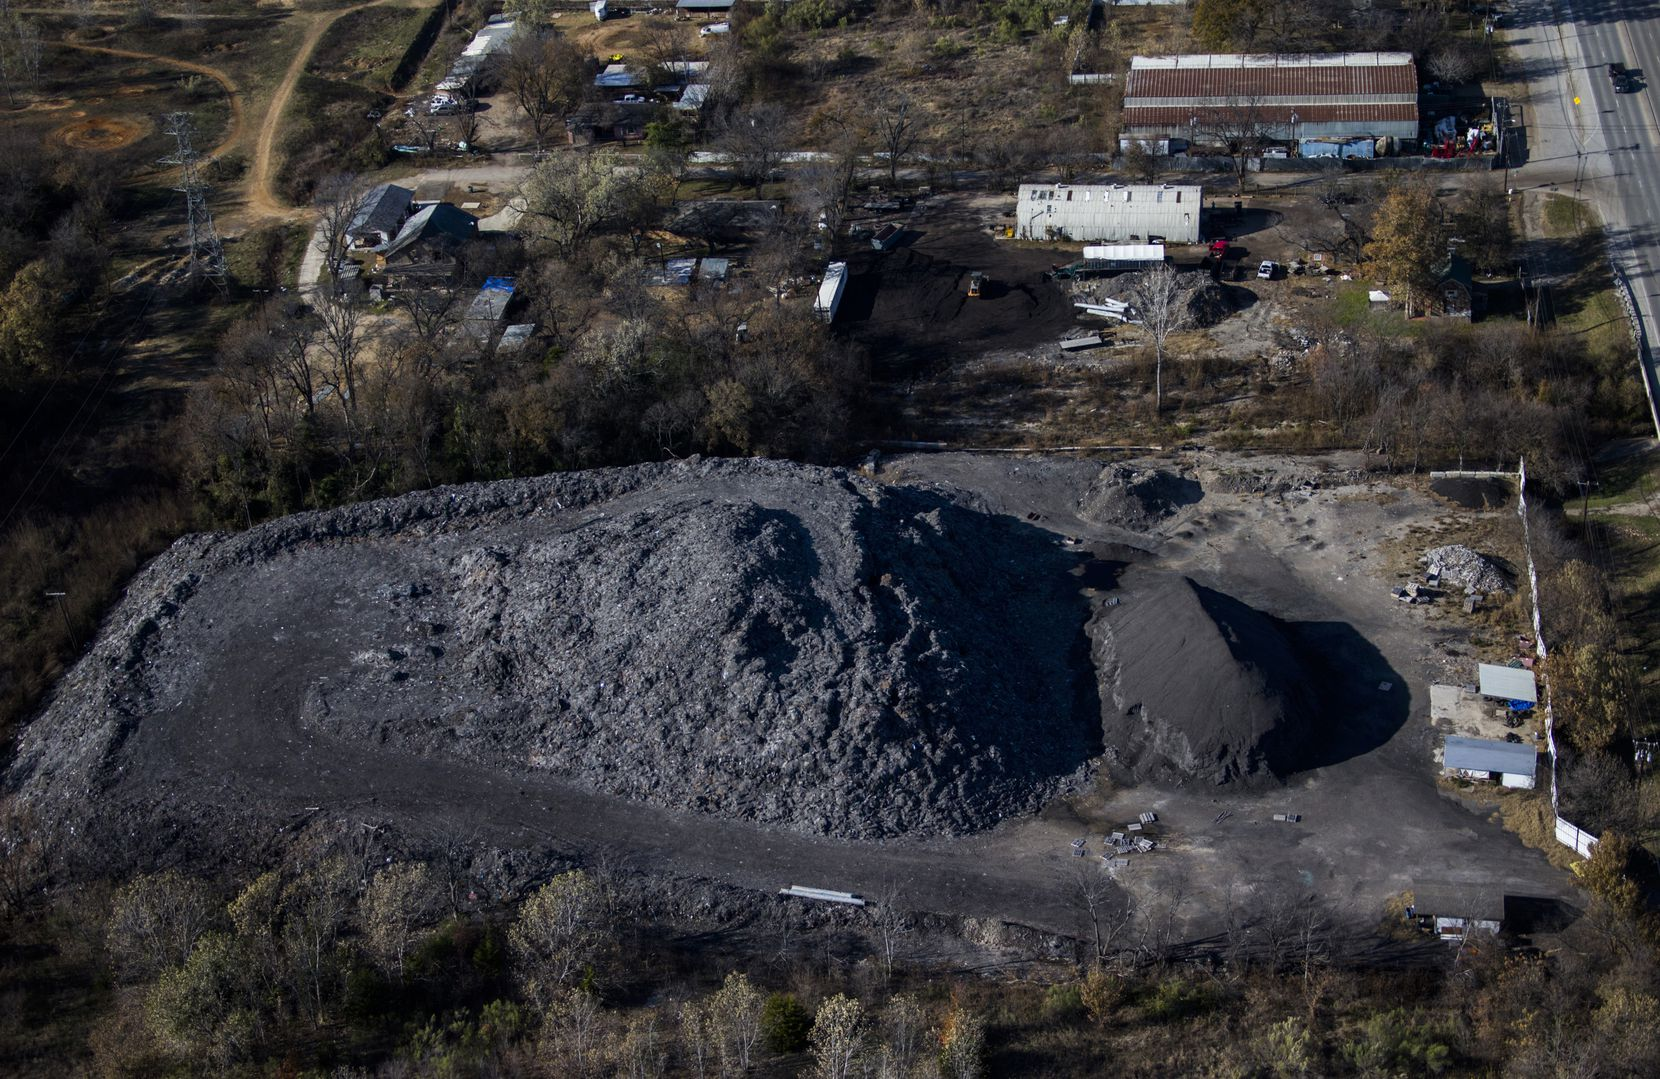 Shingle Mountain, as seen from the air off South Central Expressway and Choate Road on Nov. 19, 2019